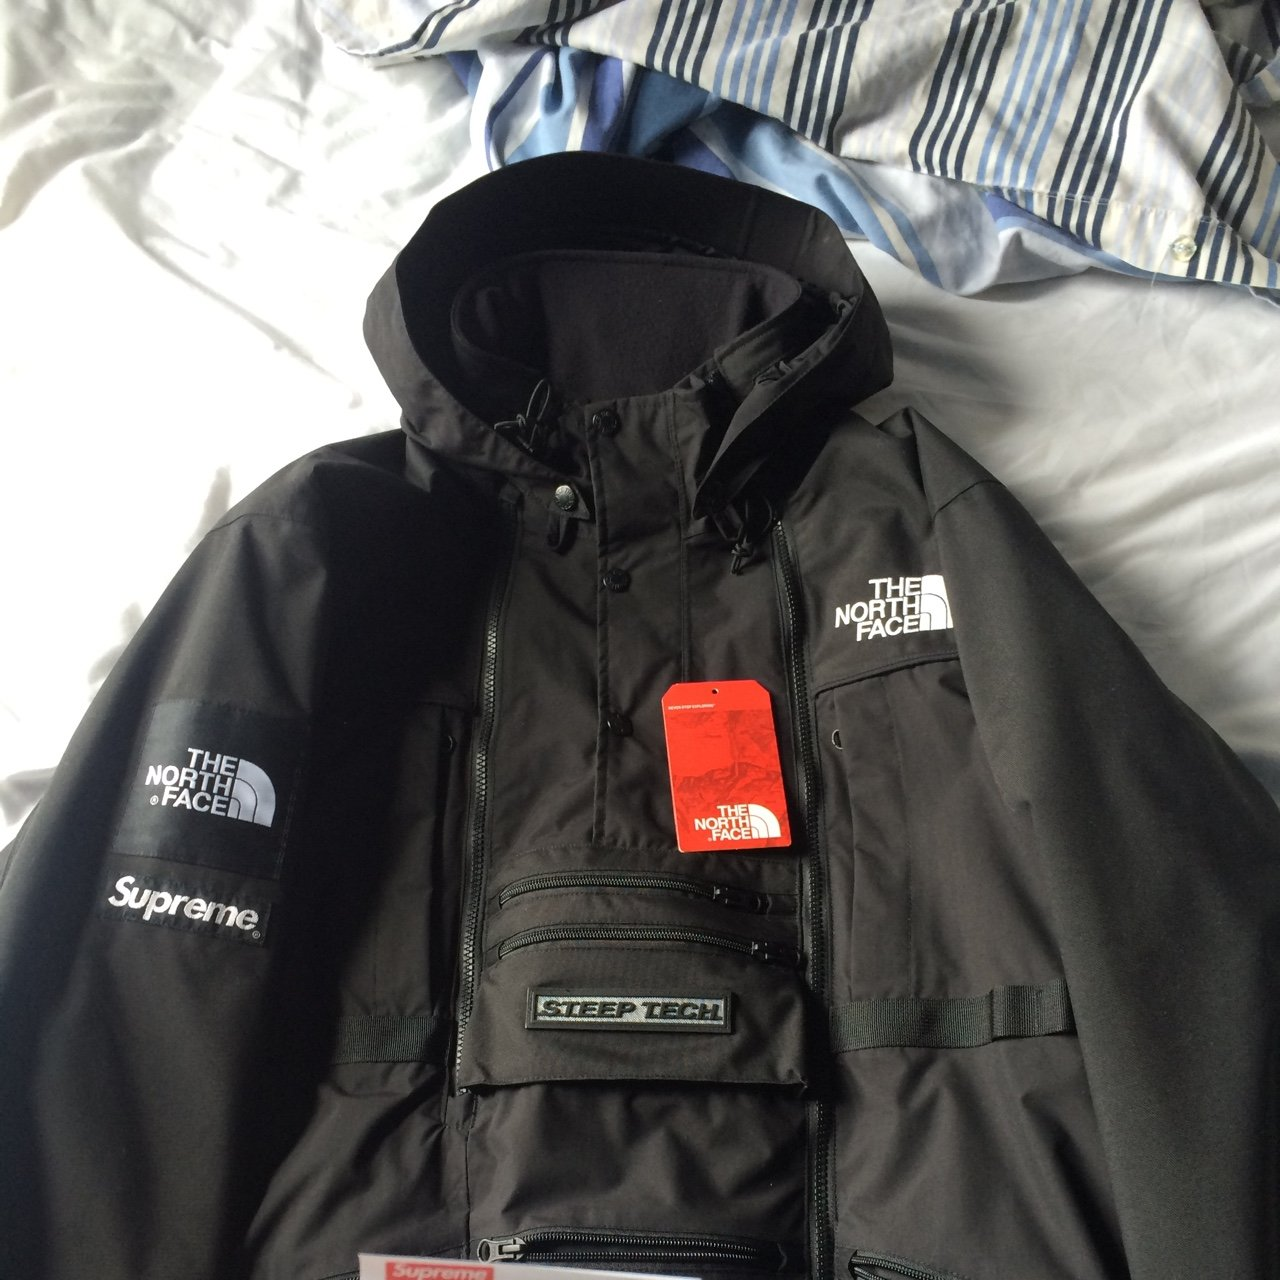 Lewiswiley 3 Years Ago Nottingham Uk Supreme X North Face Steep Tech Jacket